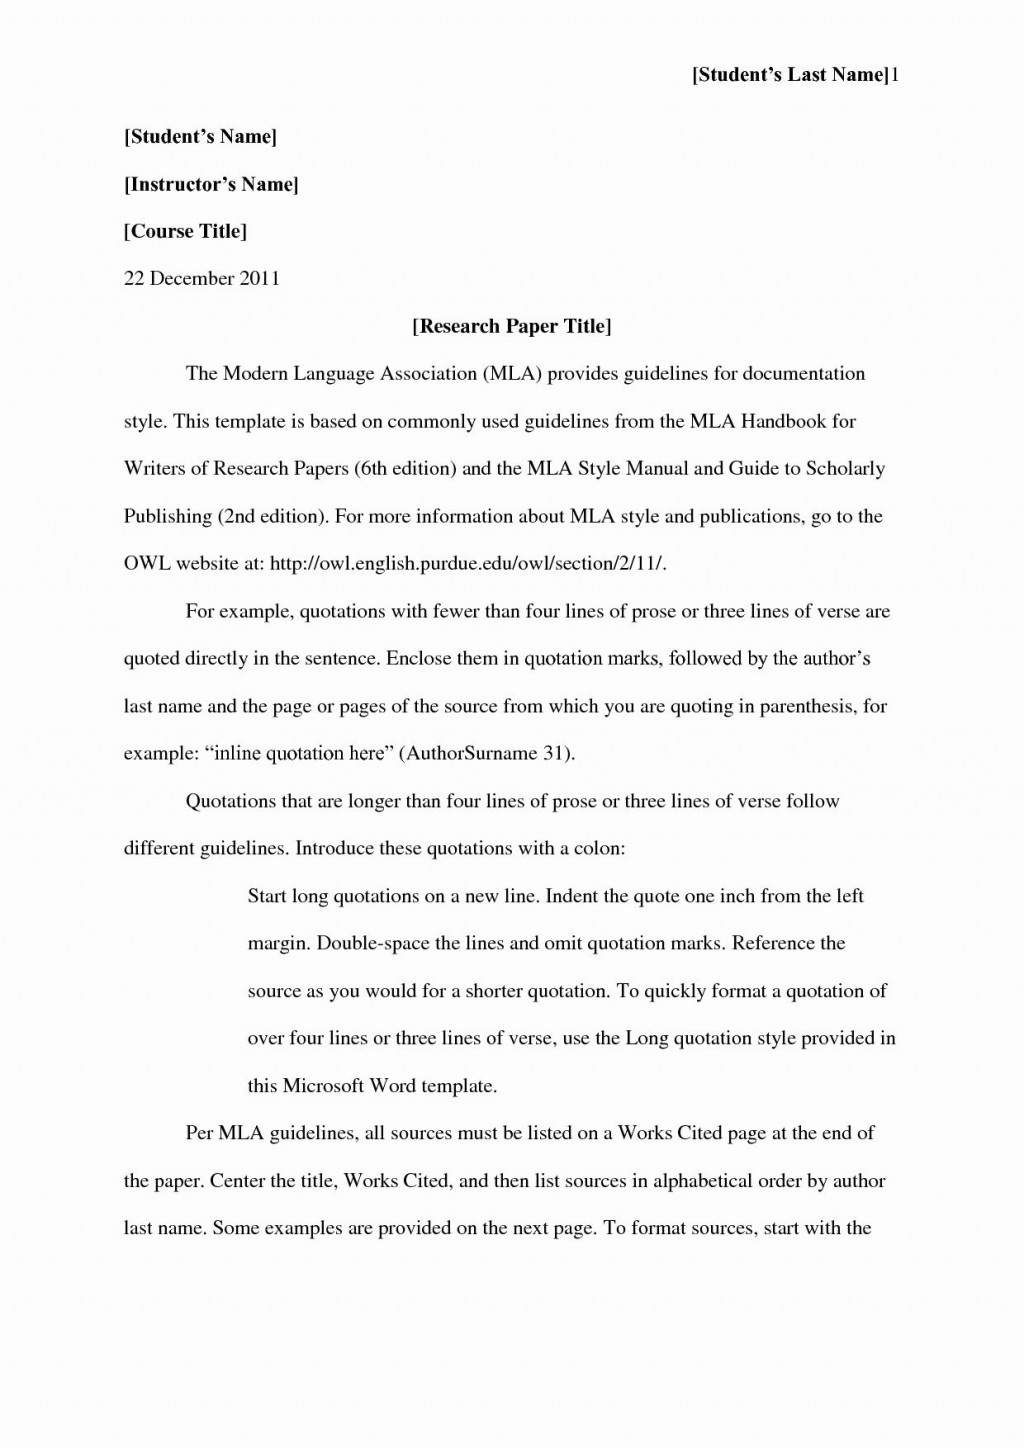 012 Mla Title Page Template Awesome Format Works Cited Scarlet Letter Best Of Apa Style Essay Research Impressive Reference Example Generator Sample Large